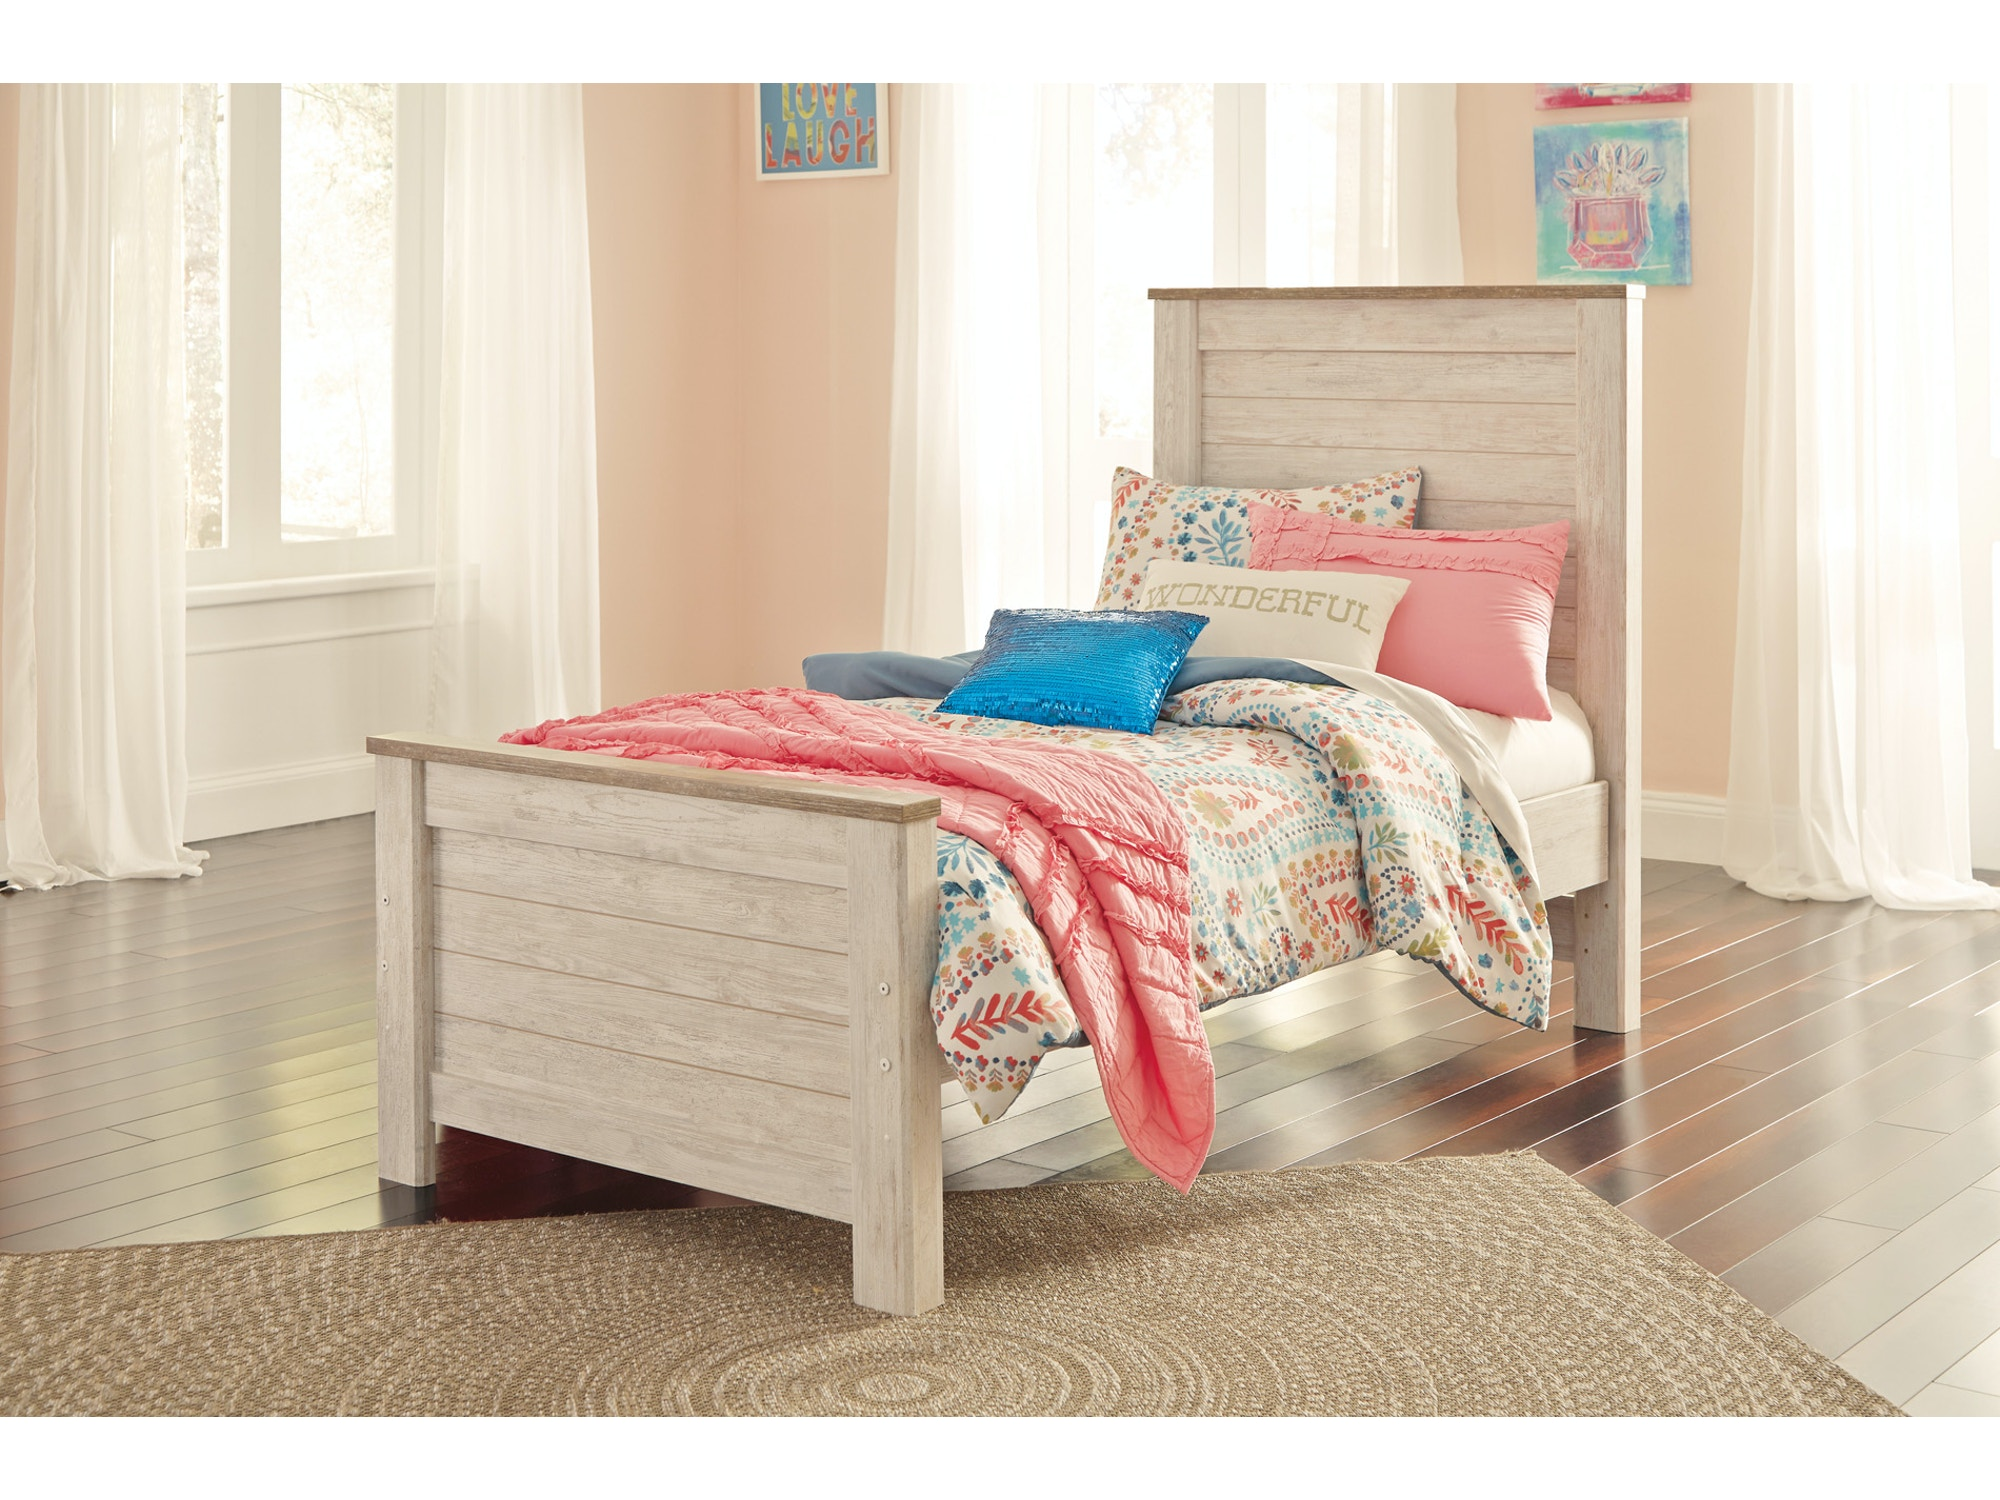 Willowton Bed - Twin 571847